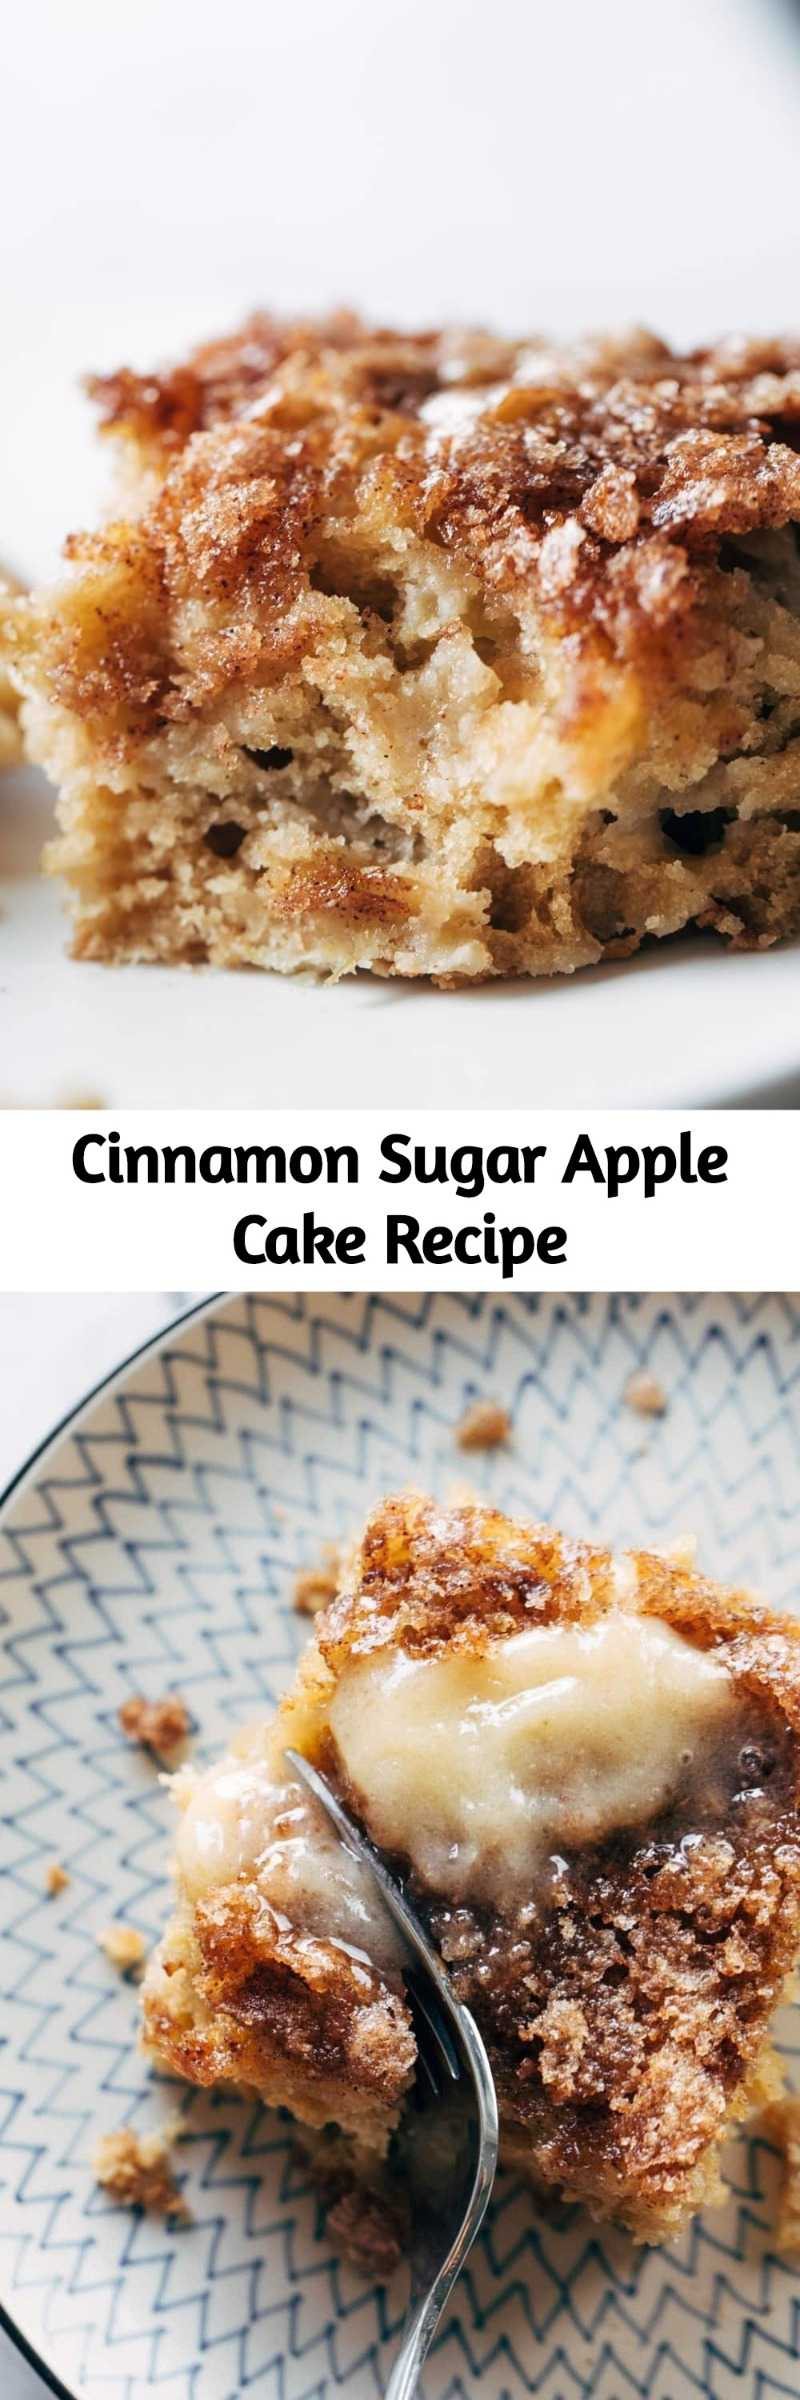 Cinnamon Sugar Apple Cake Recipe - This simple cinnamon sugar apple cake is light and fluffy, loaded with fresh apples, and topped with a crunchy cinnamon sugar layer! #cake #apple #dessert #baking #recipe